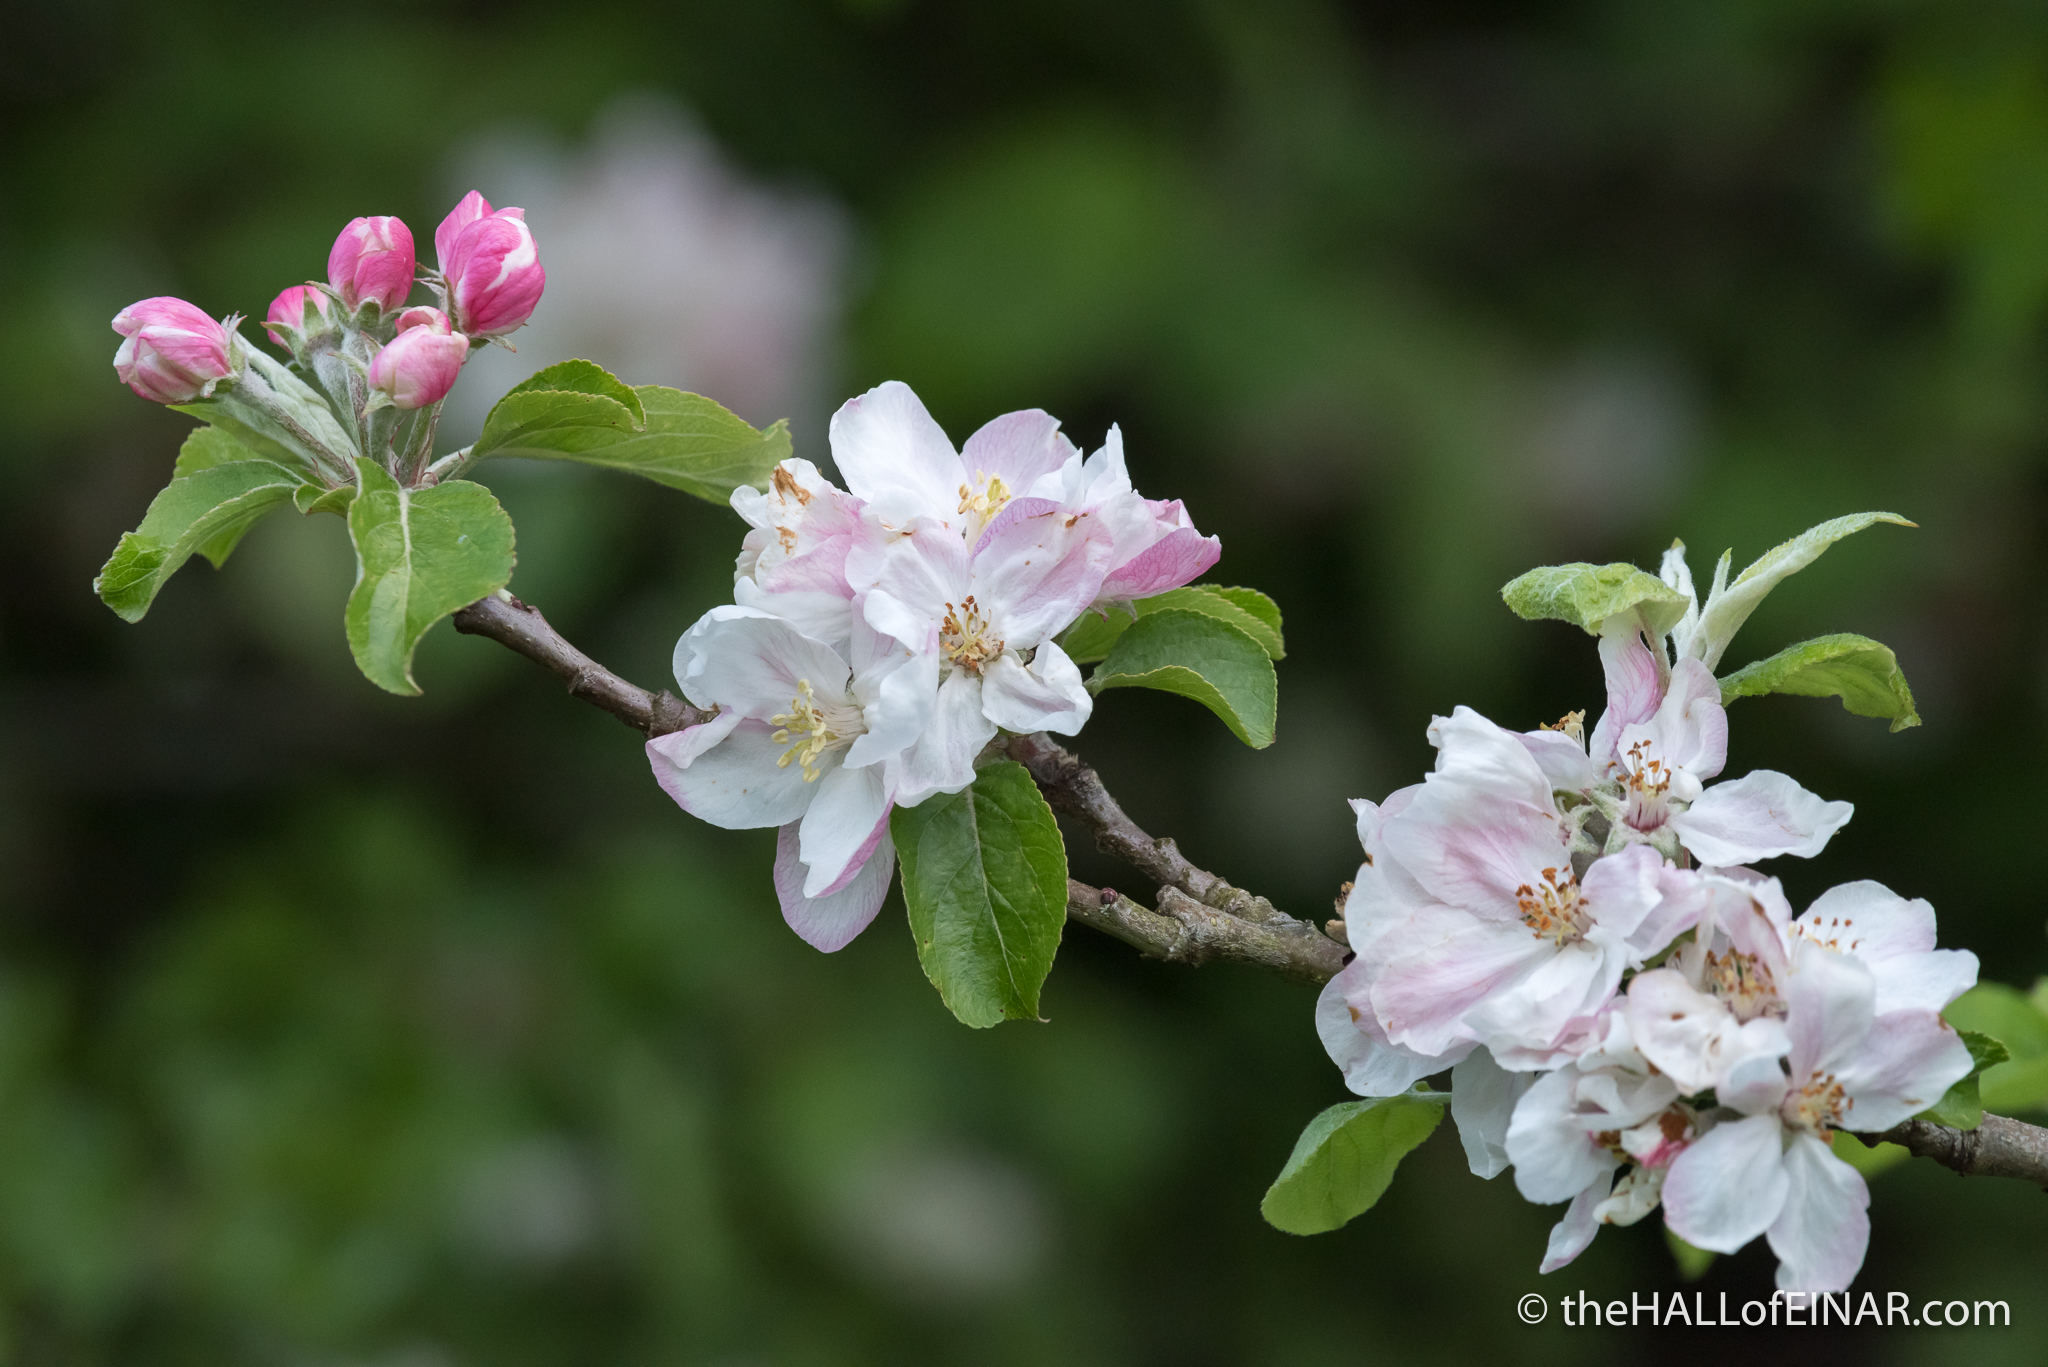 Apple Blossom Orley Common - The Hall of Einar - photograph (c) David Bailey (not the)